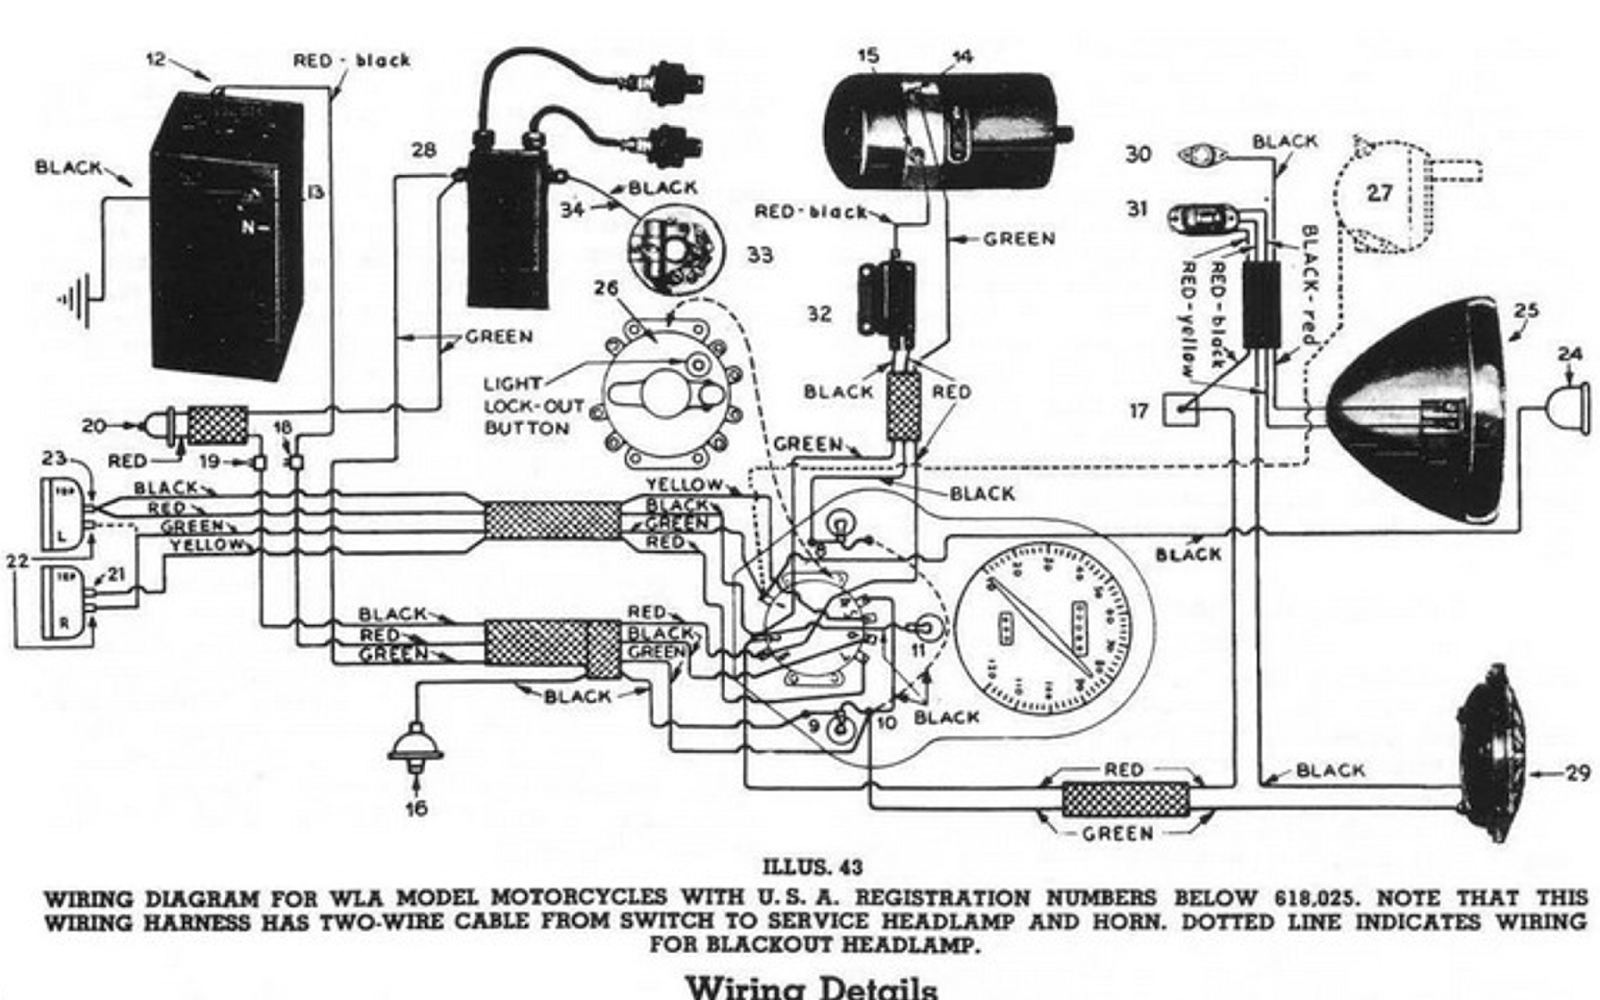 i have started re wiring the harley here is a wiring diagram from the wla manual for early models  [ 1600 x 1000 Pixel ]